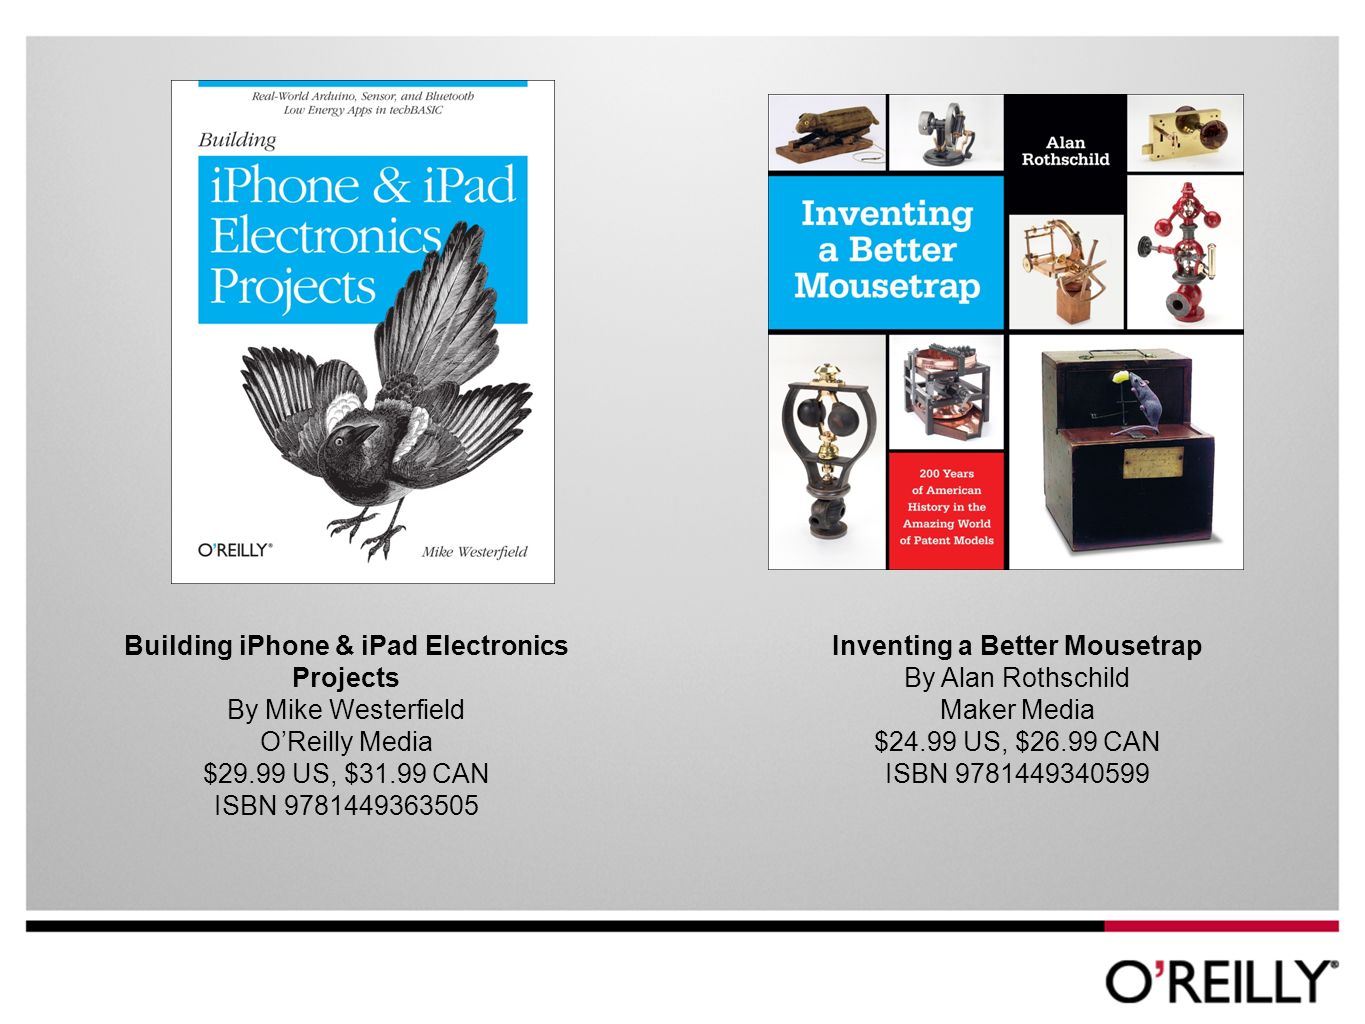 Building iPhone & iPad Electronics Projects By Mike Westerfield OReilly Media $29.99 US, $31.99 CAN ISBN Inventing a Better Mousetrap By Alan Rothschild Maker Media $24.99 US, $26.99 CAN ISBN